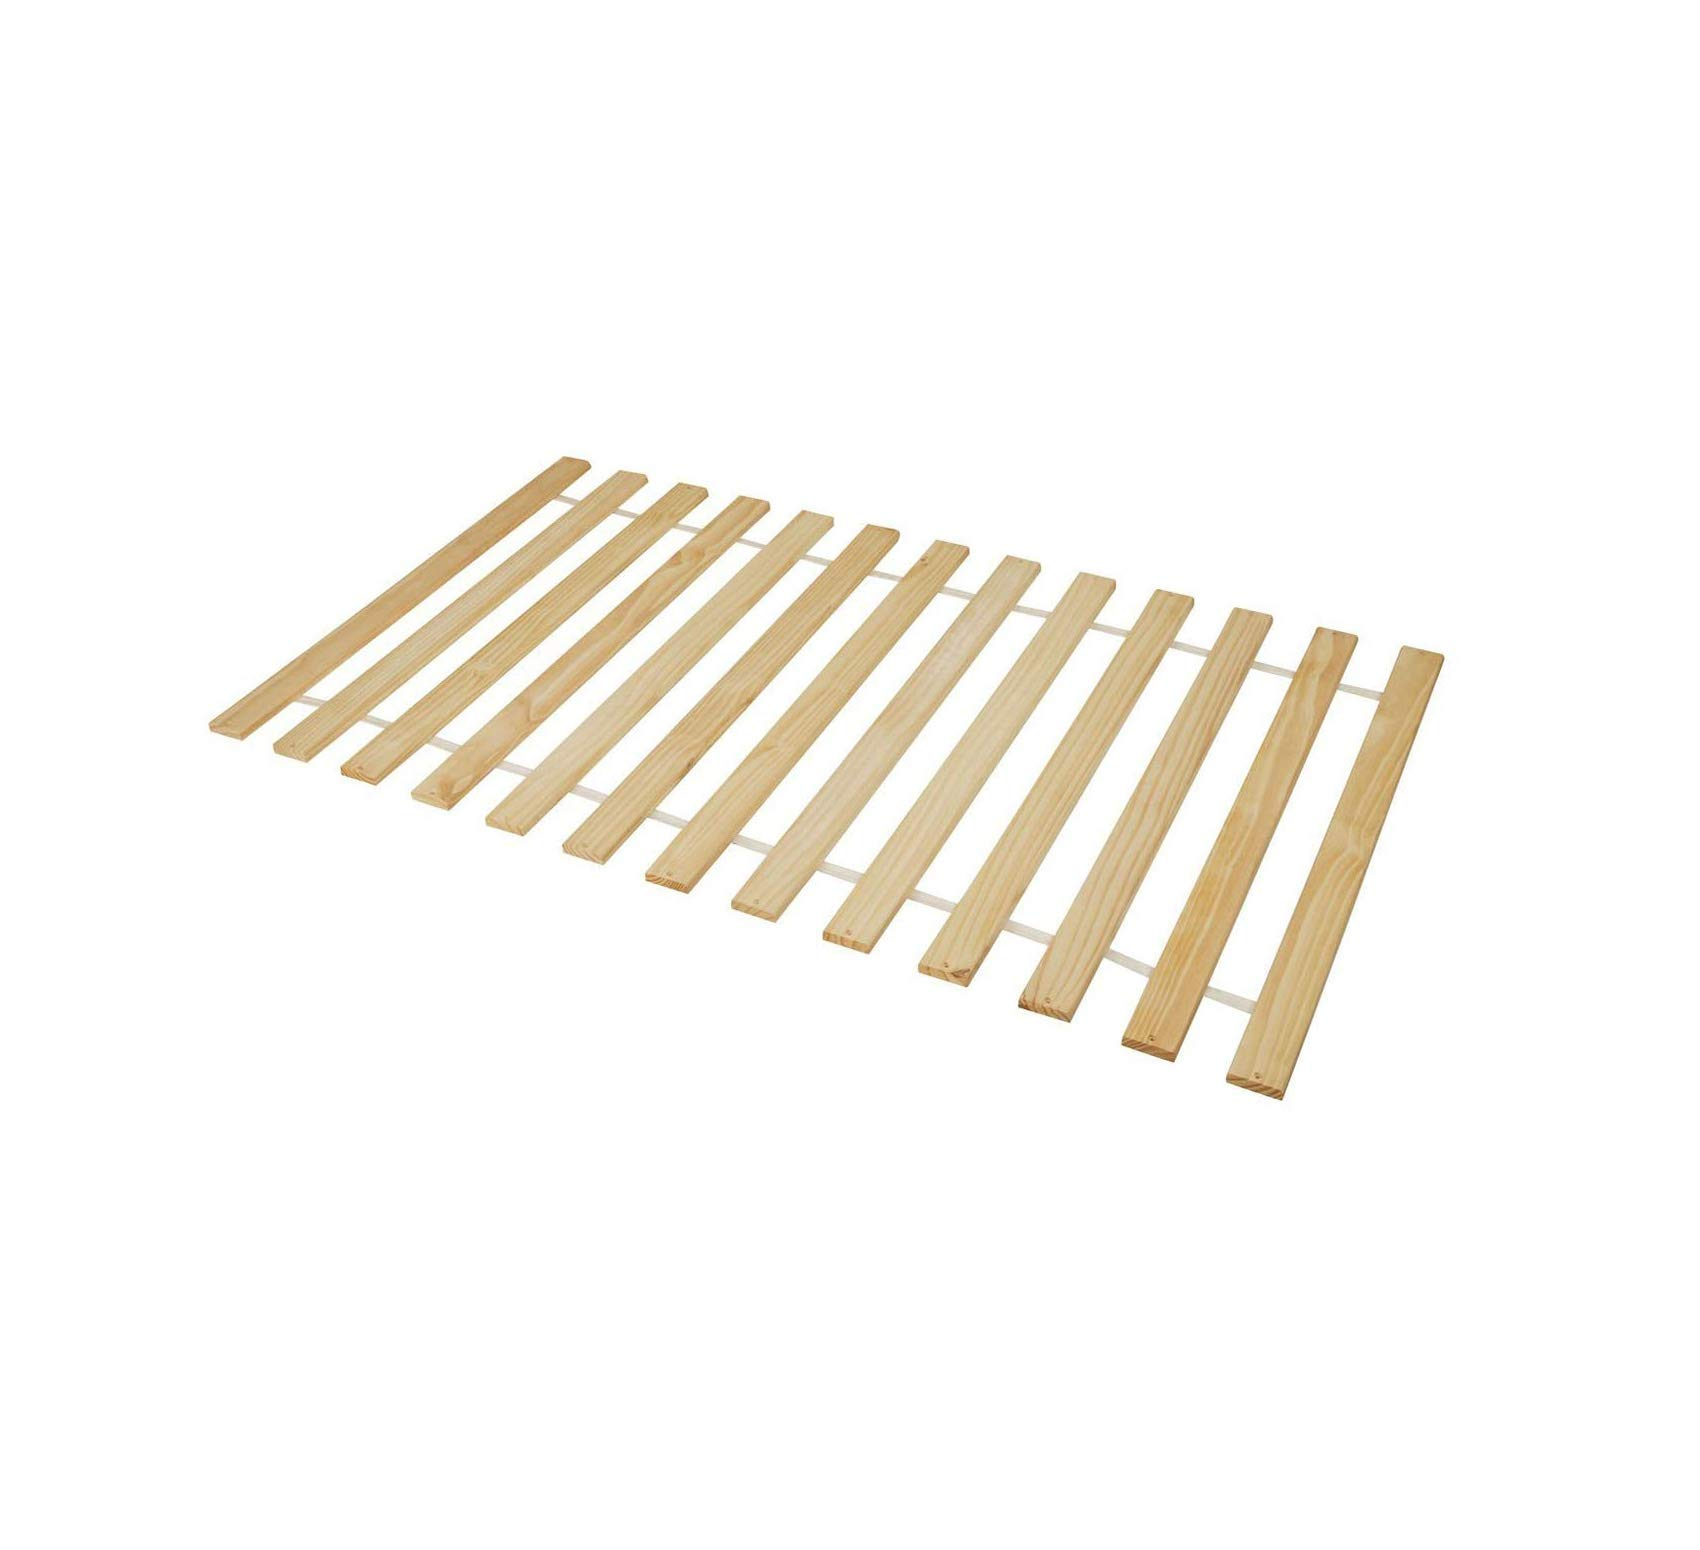 Wood & Style Slat Pack, Full, Unfinished Comfy Living Home Décor Furniture Heavy Duty